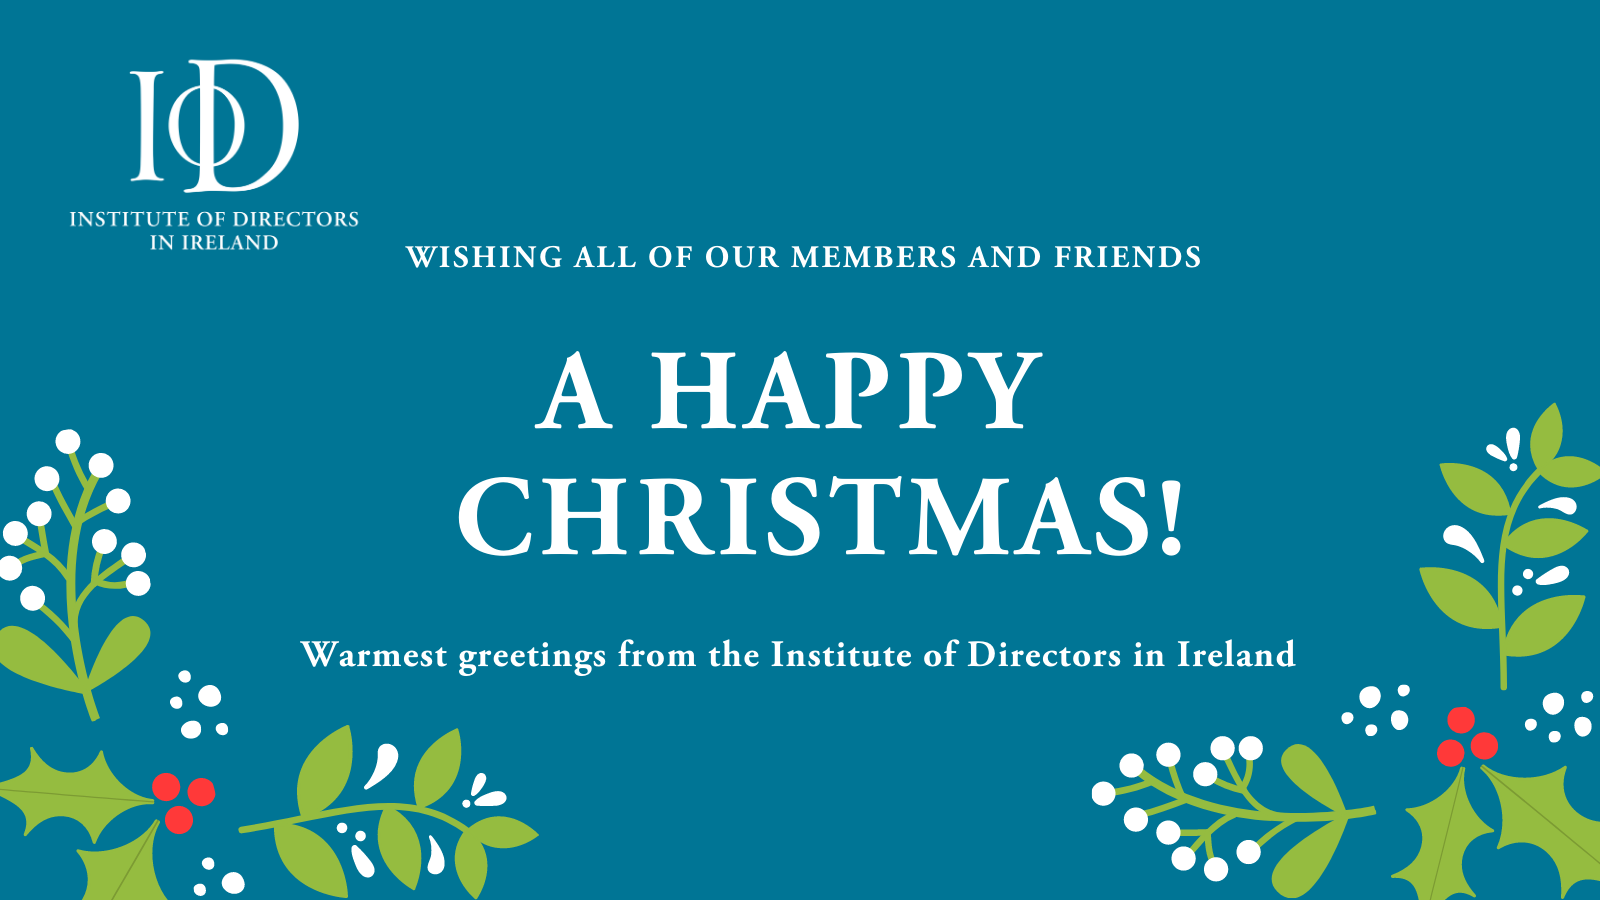 Happy Christmas from all at IoD Ireland